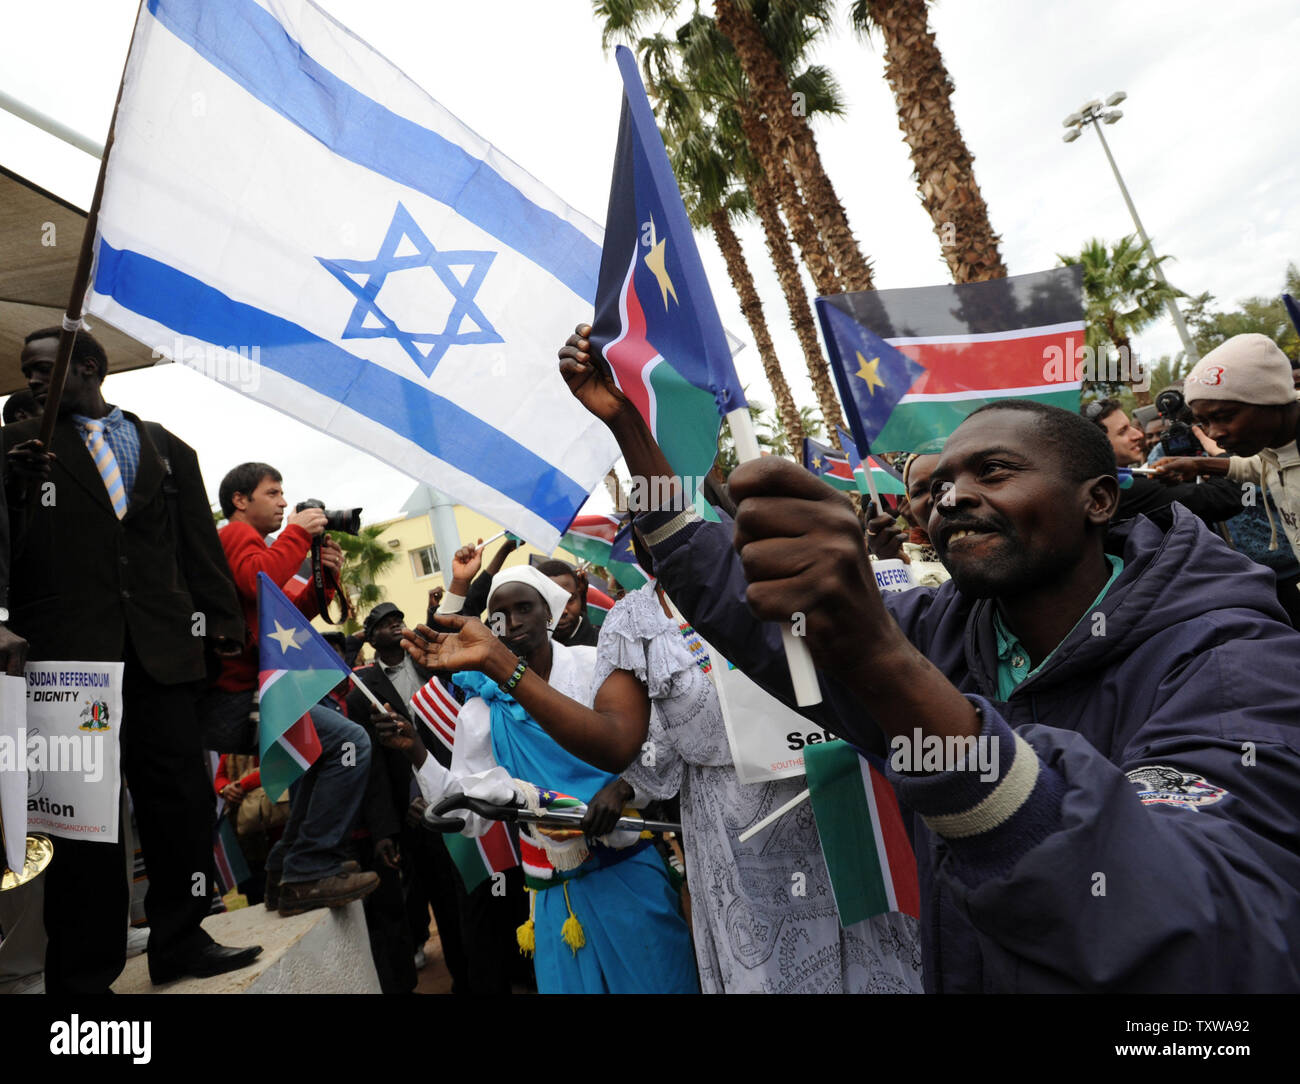 South Sudanese refugees wave South Sudan and Israeli flags at a rally in Tel Aviv, Israel, to support the Southern Sudan referendum, January 9, 2011. More than a million Southern Sudanese started casting their ballots in the seven day referendum that would split Christian South Sudan from the northern government dominated by Arab Muslims. The referendum is expected to split Africa's largest nation into two, giving birth to the world's newest nation. UPI/Debbie Hill - Stock Image